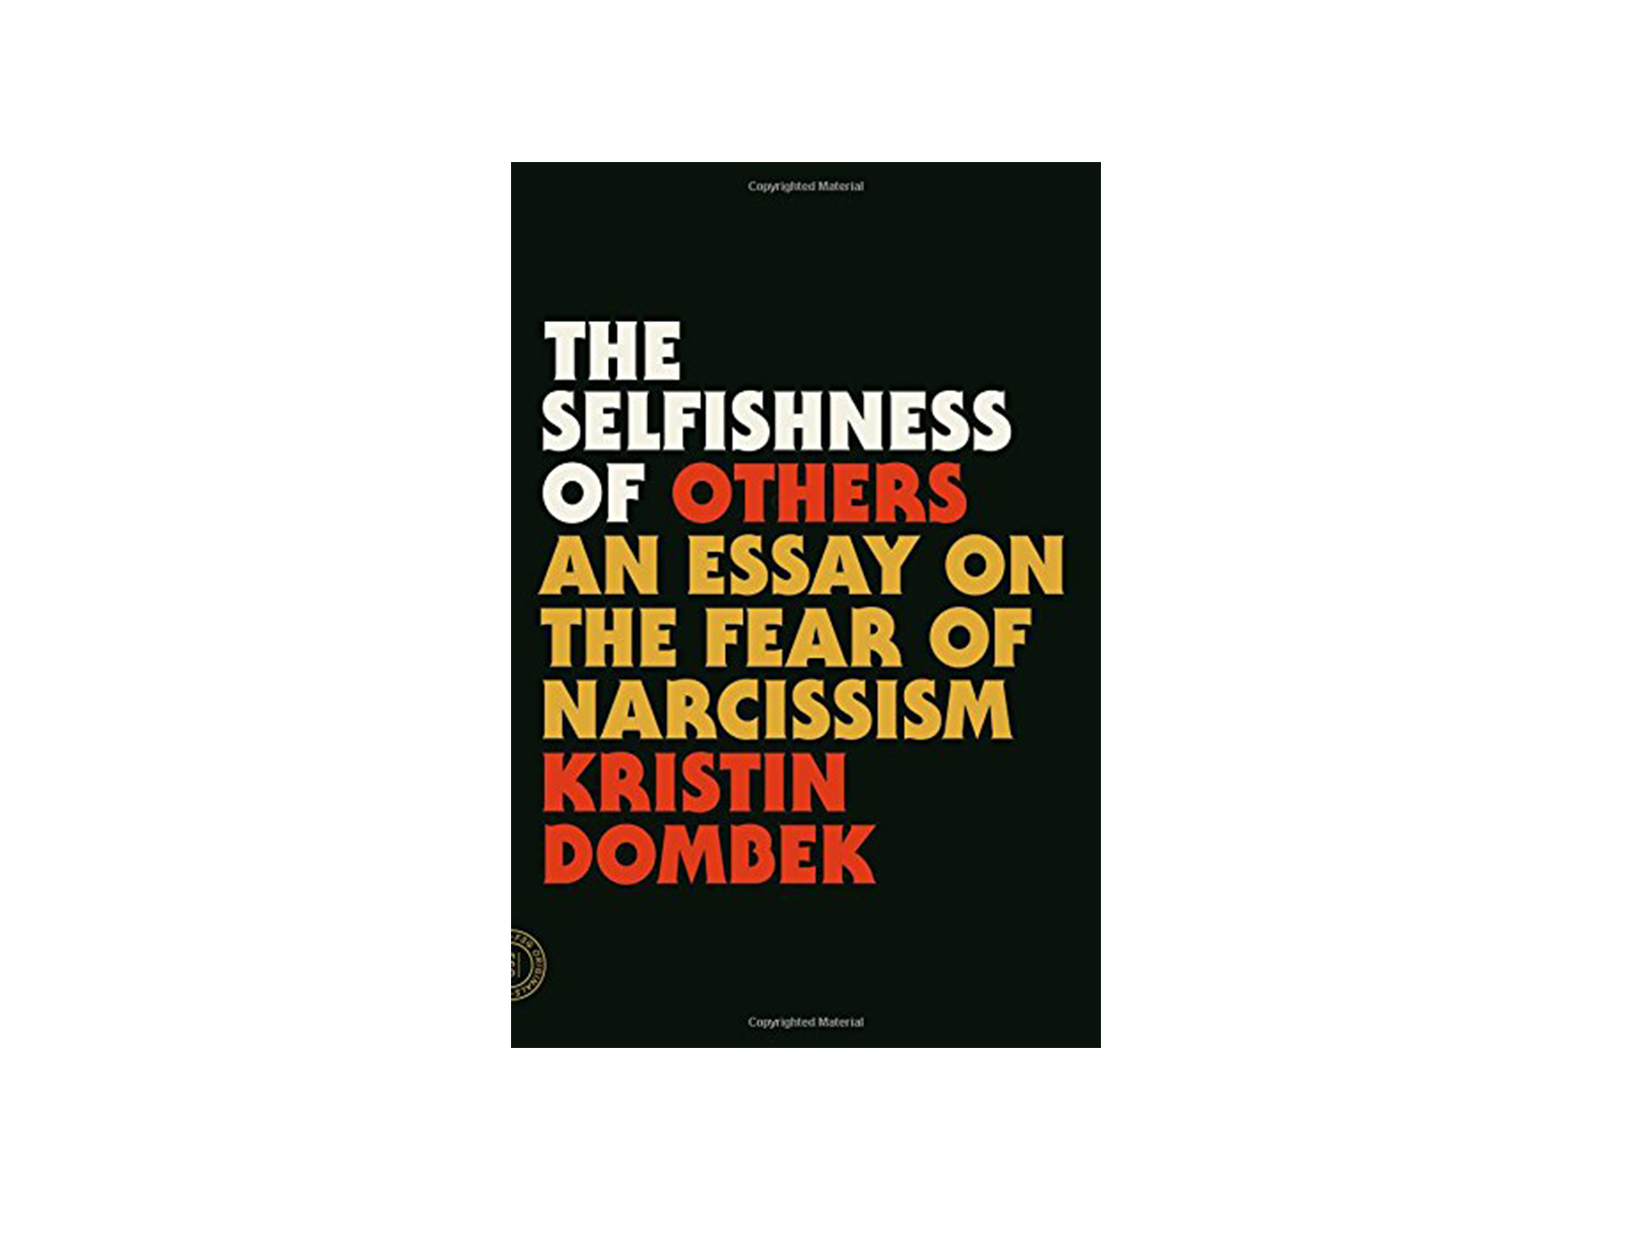 The Selfishness of Others by Kristin Dombek